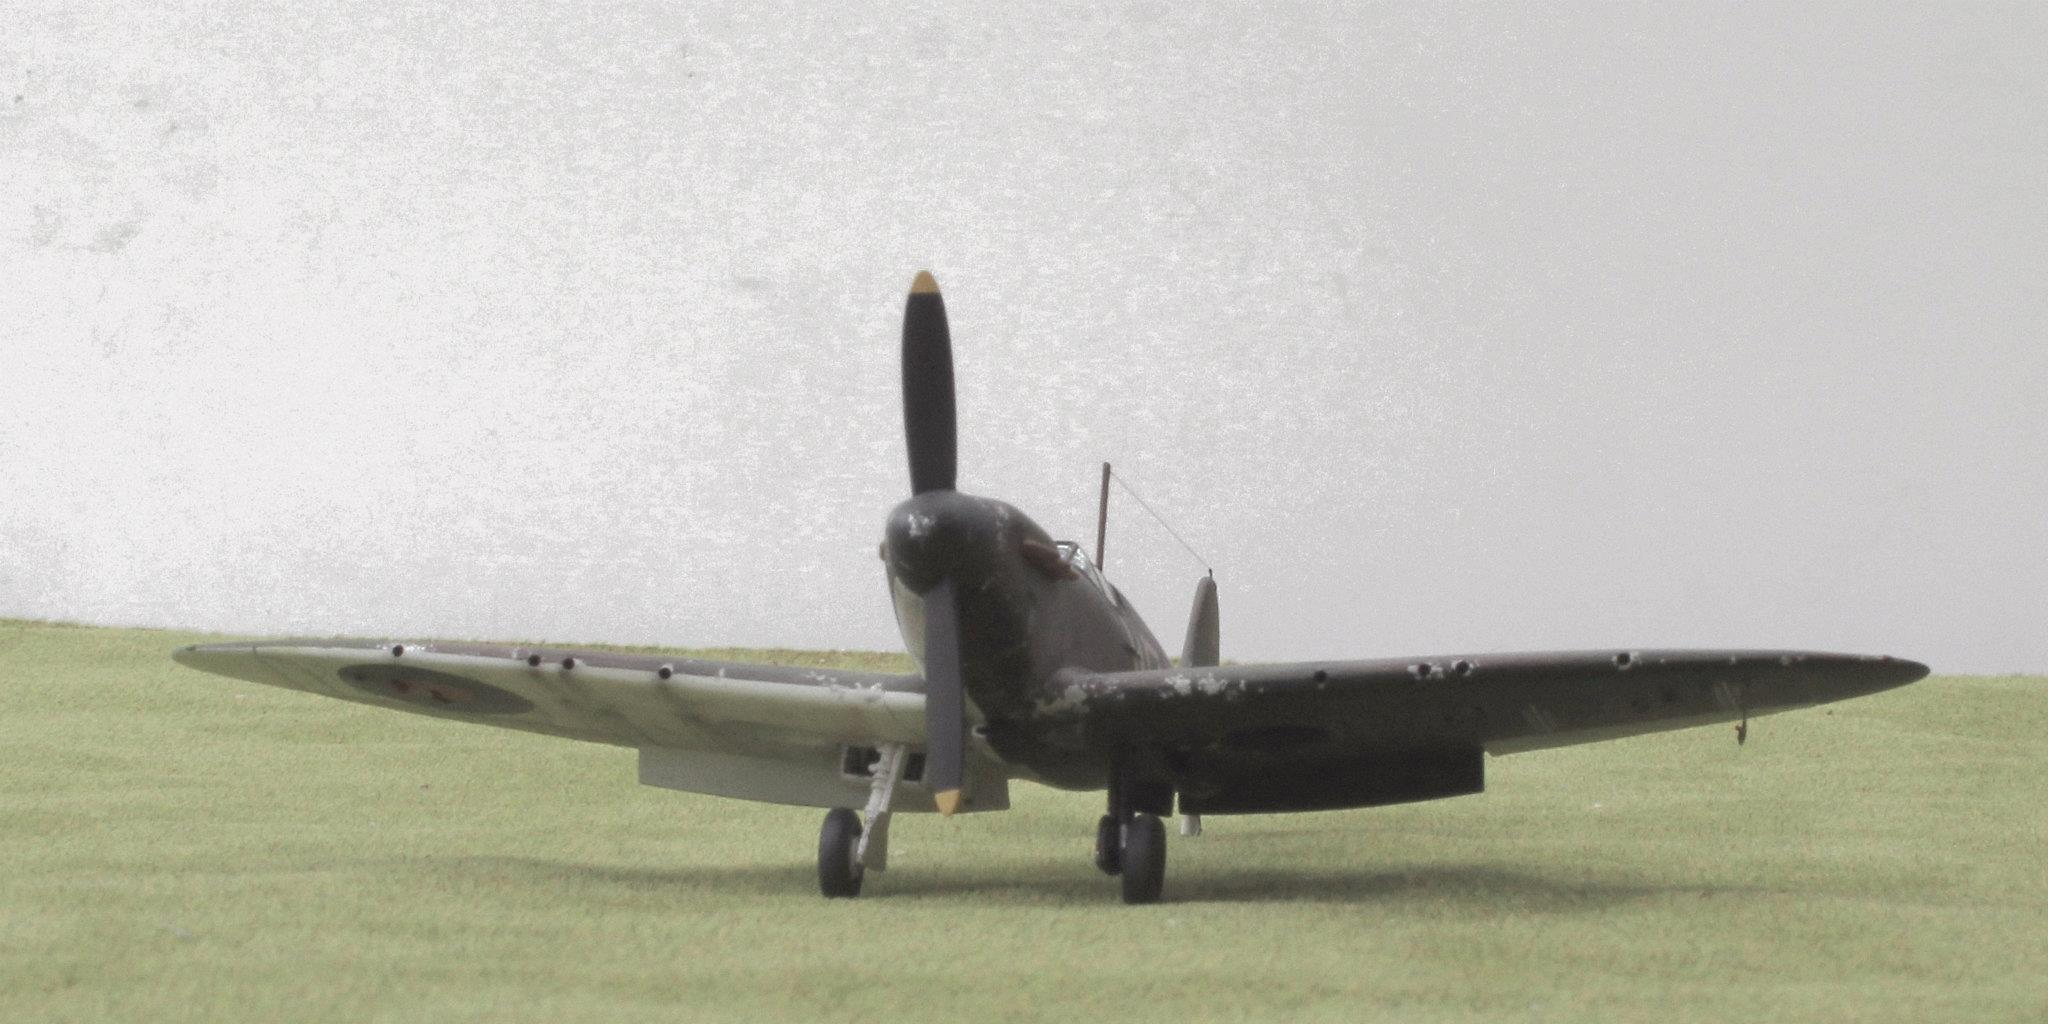 Spitfire Mk I of 19 Squadron at Duxford in early 1939. Kit is 1/48th scale by Airfix.